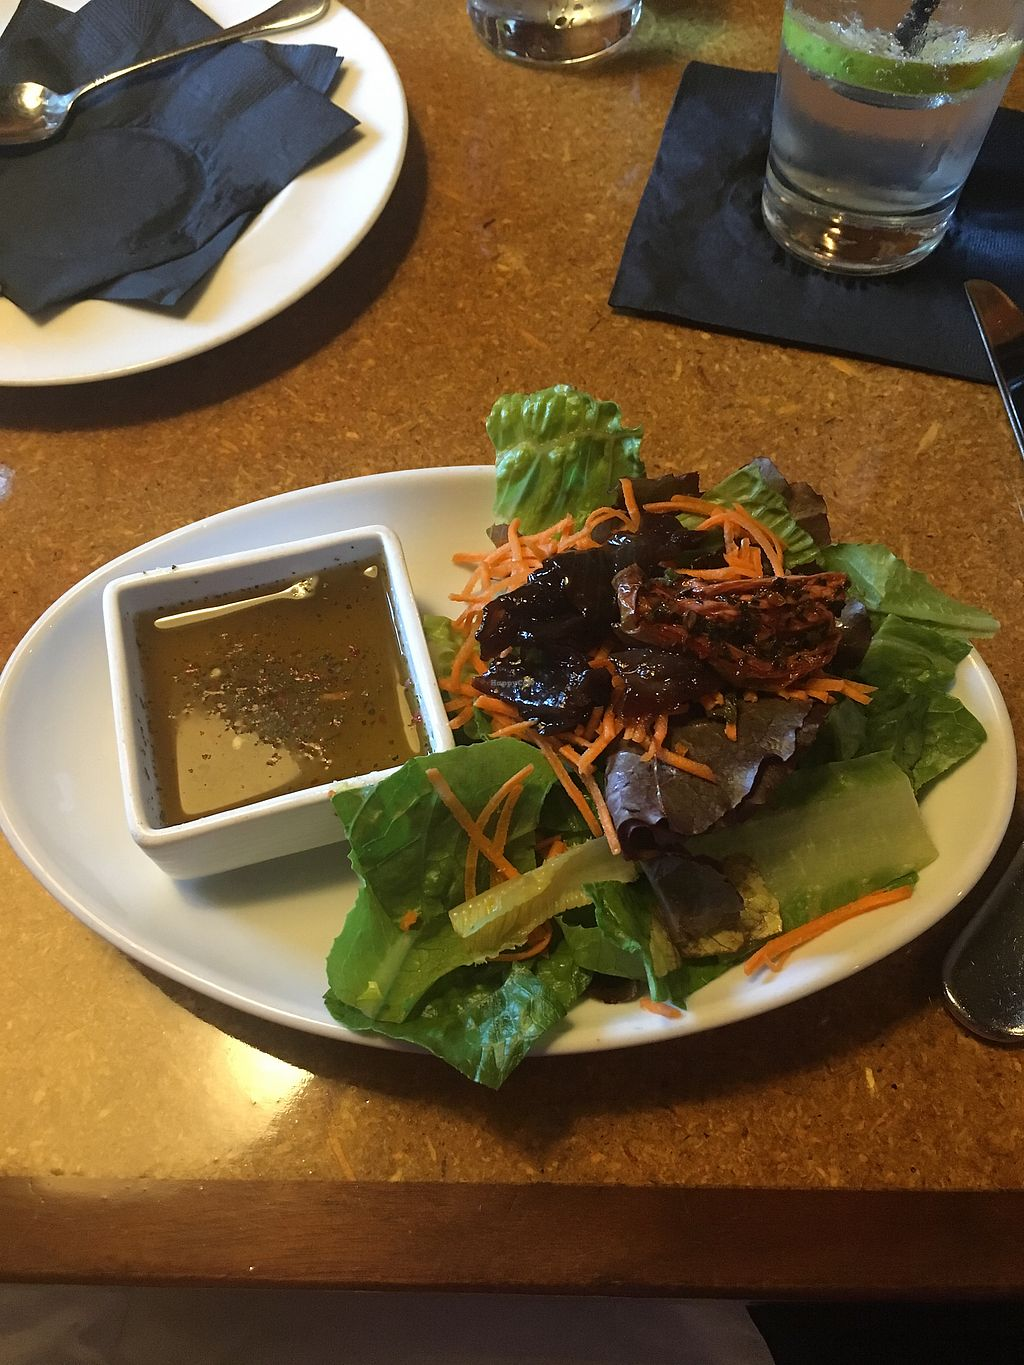 """Photo of Bearded Dogg Lounge  by <a href=""""/members/profile/Mariarosekicks"""">Mariarosekicks</a> <br/>vegan Sobeit- portobellos and grilled veggies  <br/> September 4, 2017  - <a href='/contact/abuse/image/100019/300872'>Report</a>"""